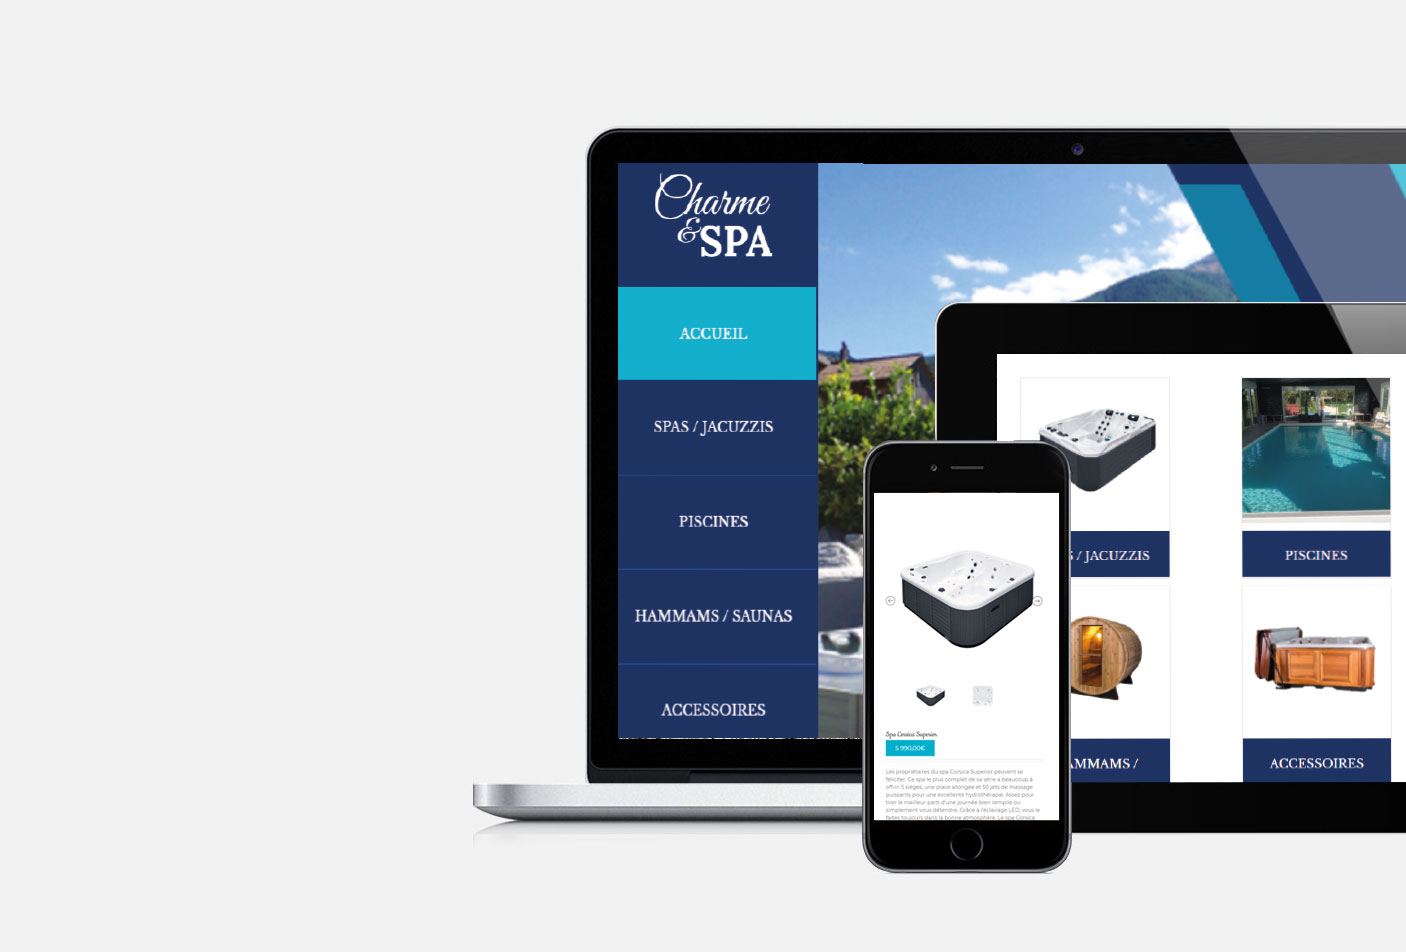 Conception site web e-commerce Charme et Spa Tours